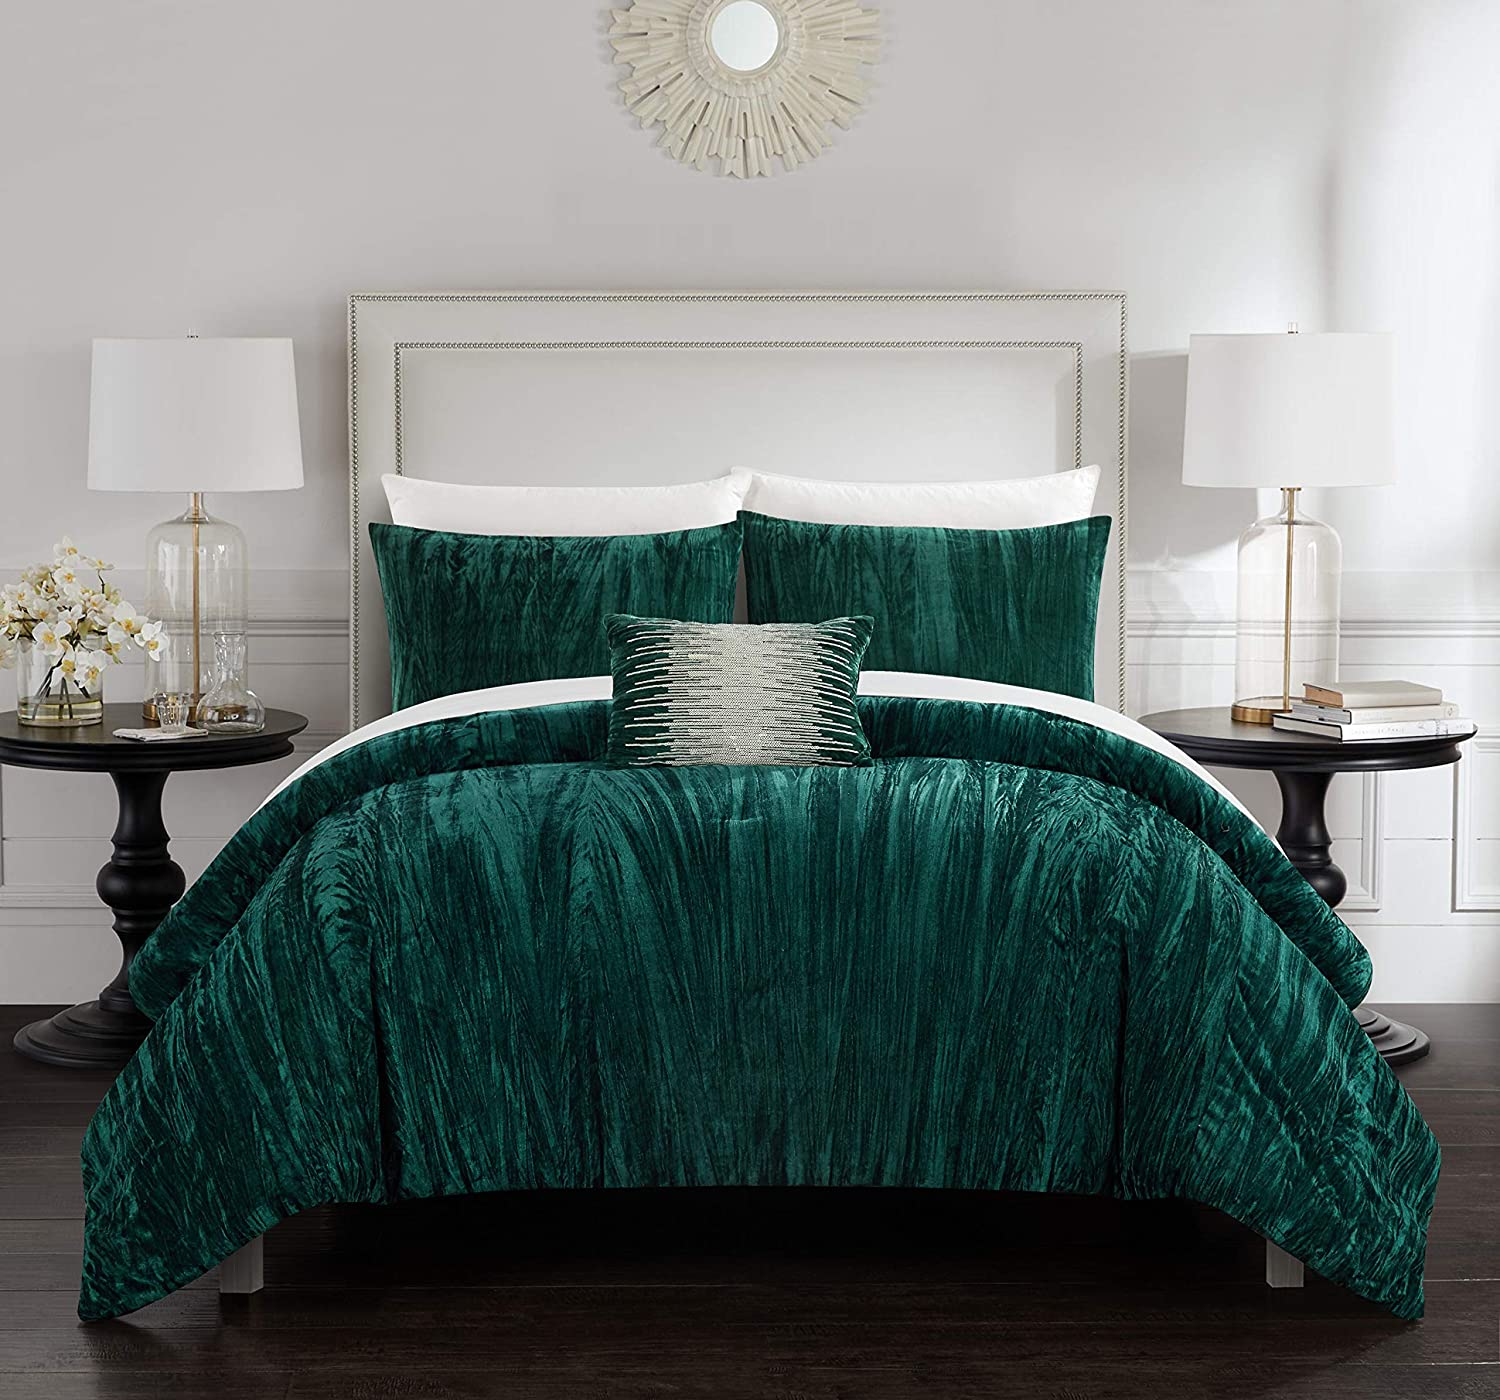 Amazon Com Chic Home Westmont 8 Piece Comforter Set Crinkle Crushed Velvet Bed In A Bag Bedding Sheet Set Decorative Pillow Shams Included King Green Home Kitchen